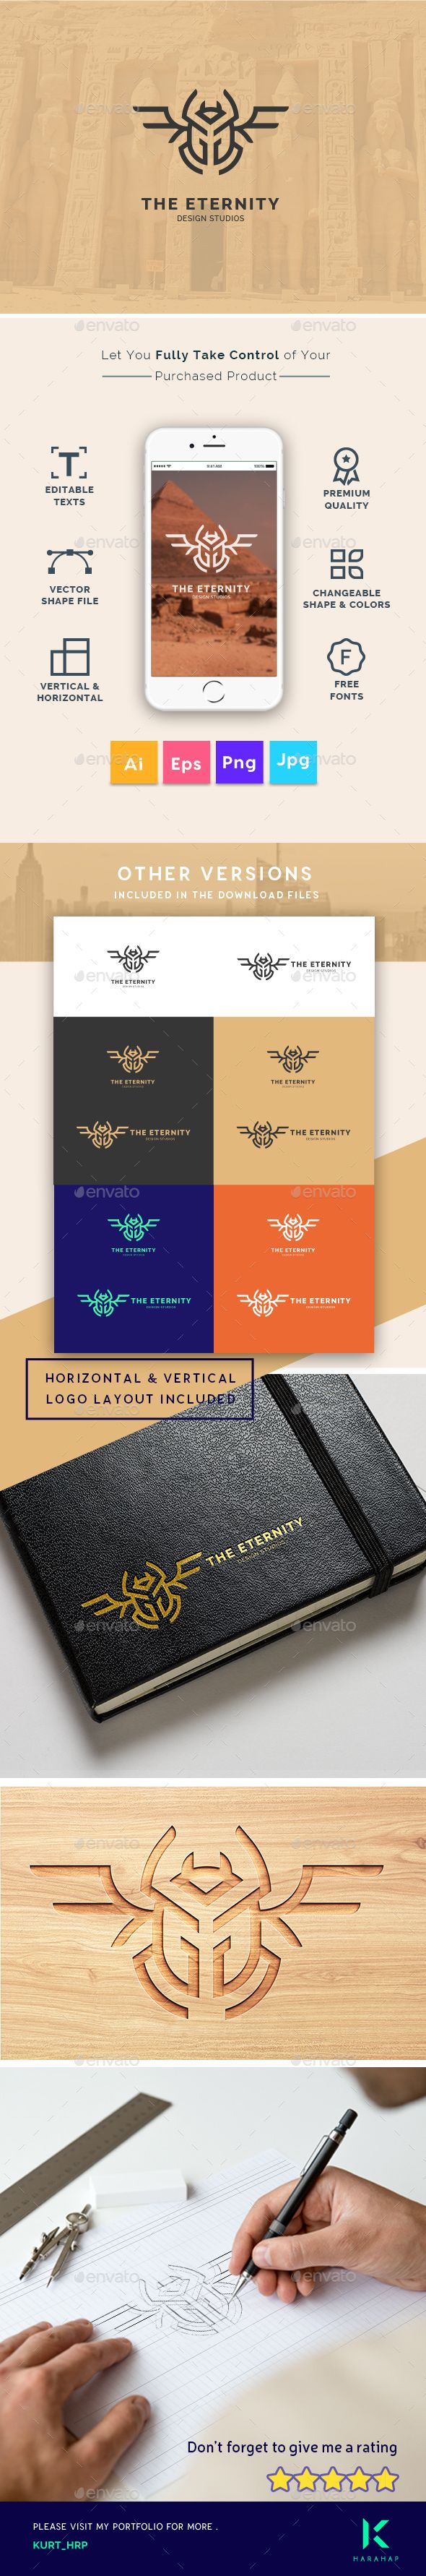 The Eternity - Scarab Beetle Insect symbol Creative Logo Template - Logo Templates